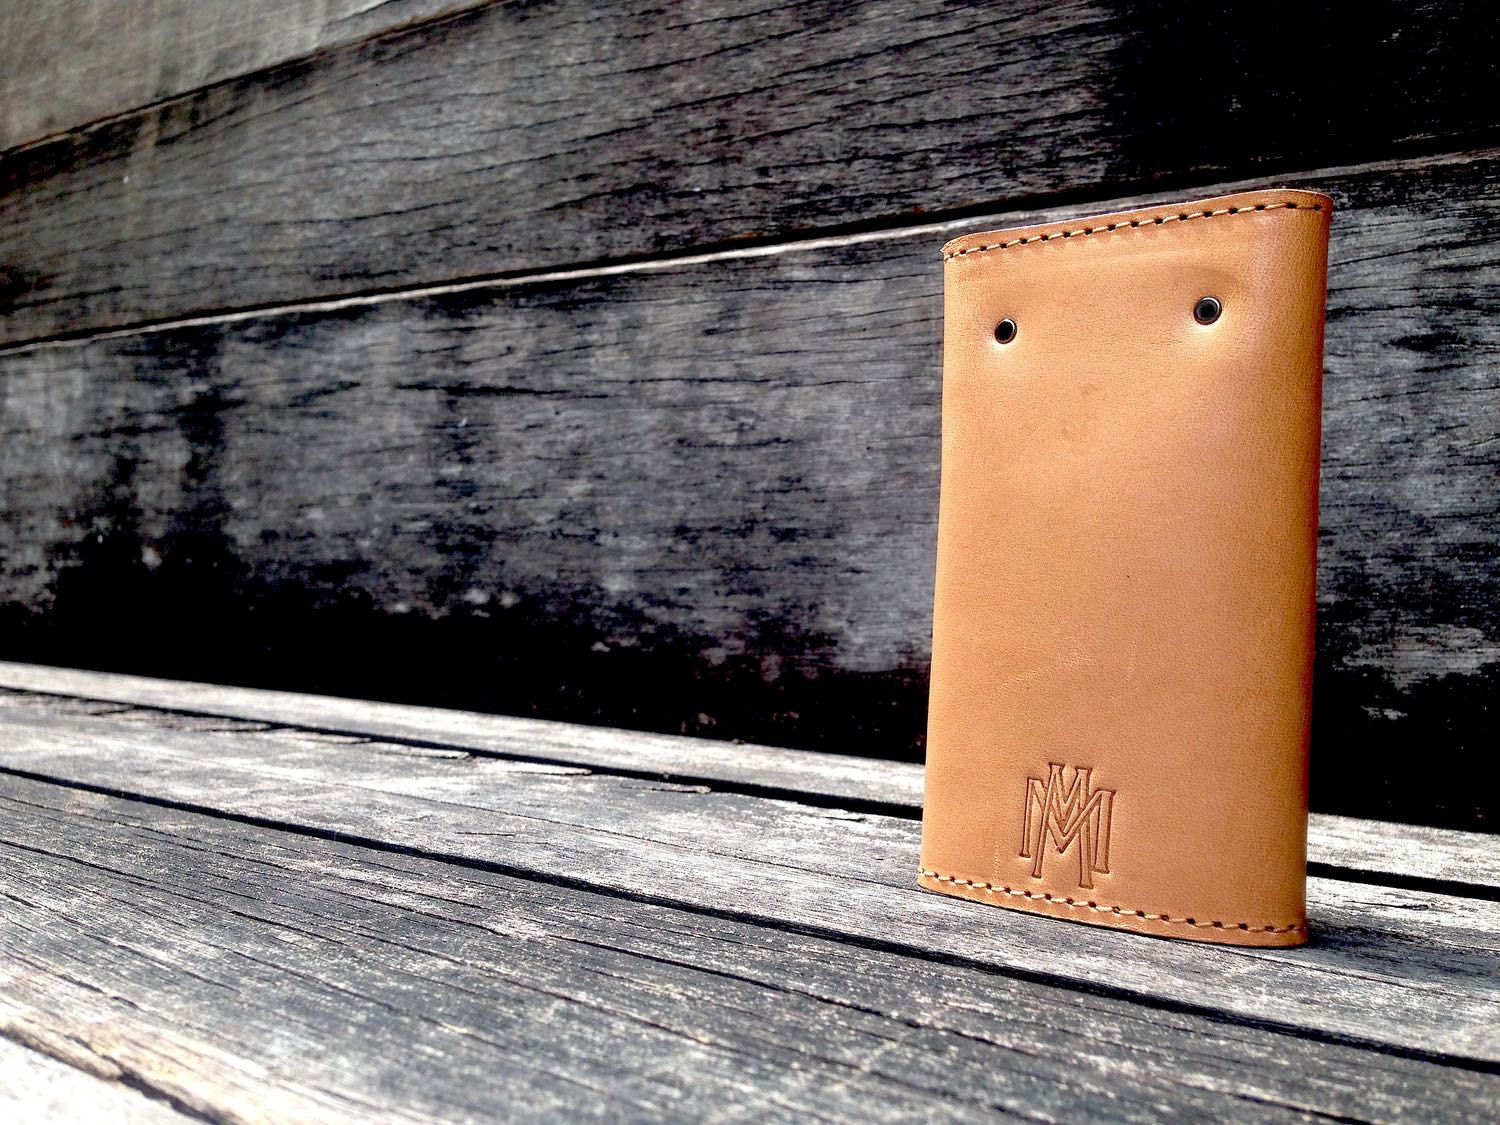 34life-corporate-events-workshops-gifts-products-designs-leather-monogram-personalise-keyholder-01w.jpg